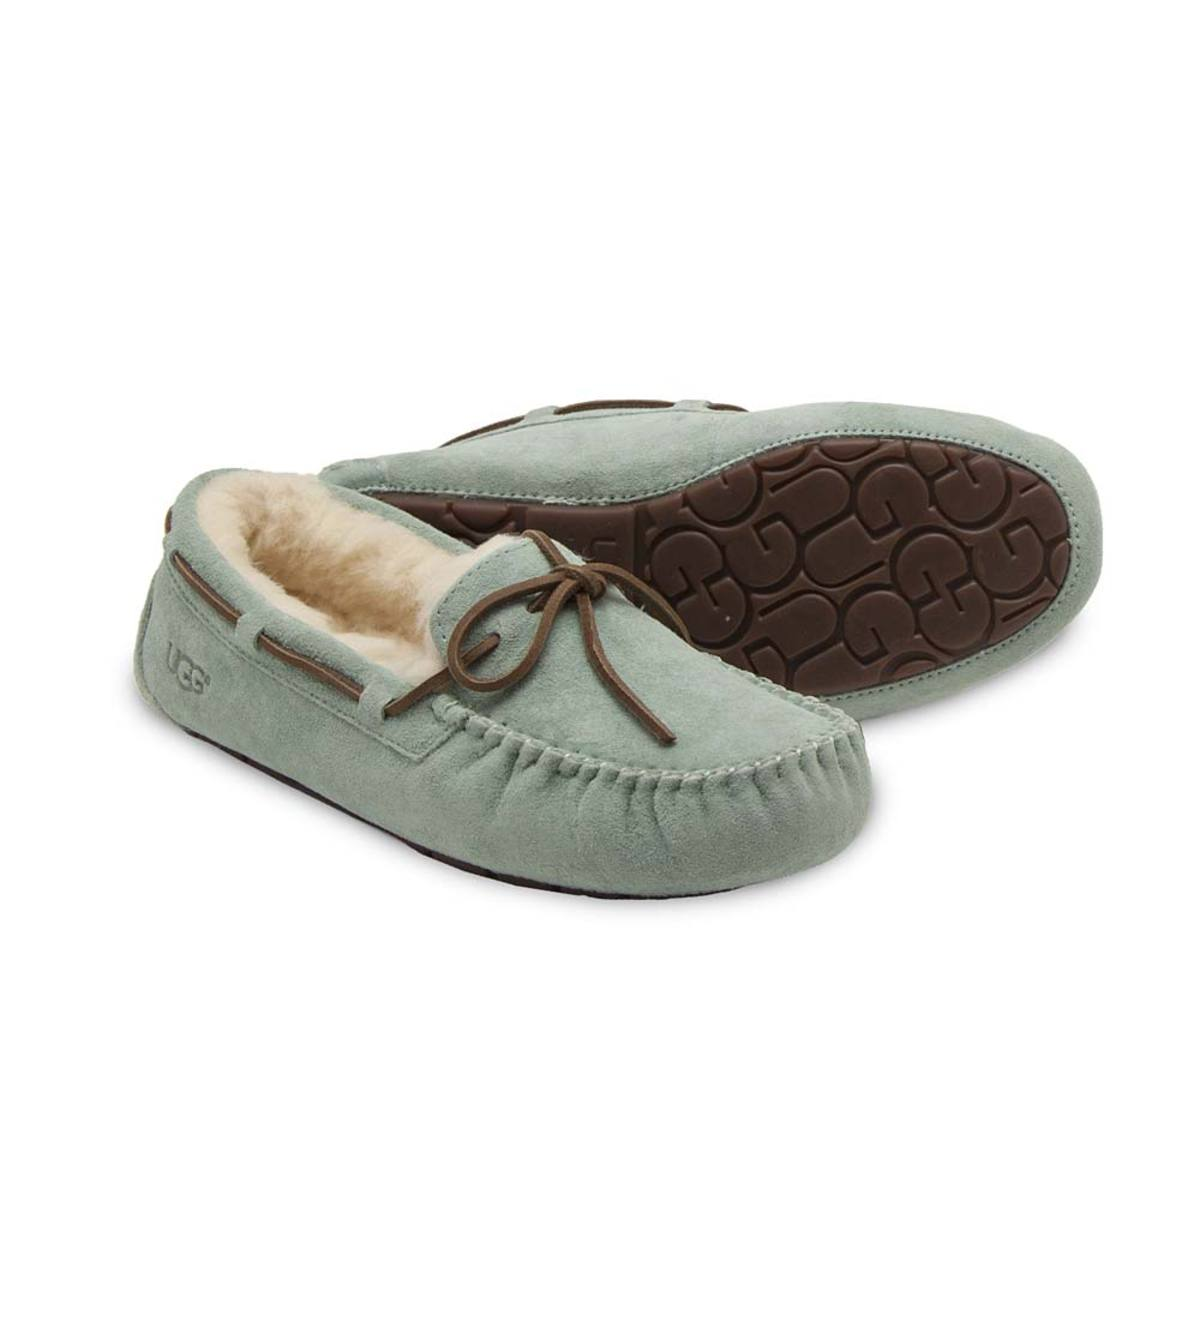 UGG Australia Womens Dakota Moccasin Slippers - Agave - Size 9